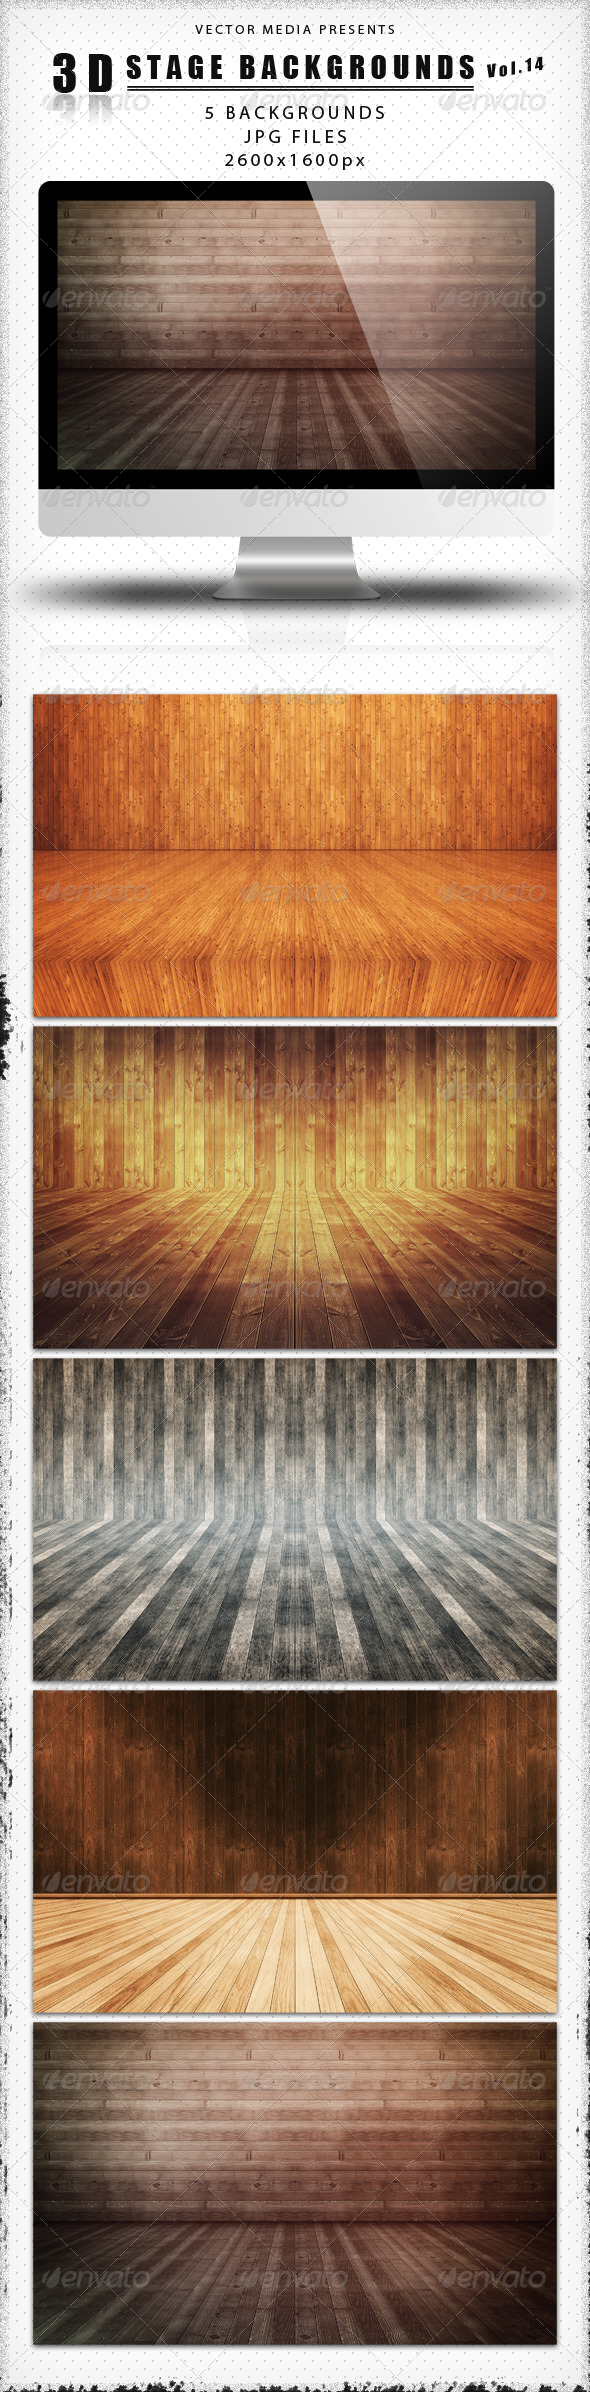 GraphicRiver 3D Stage Backgrounds Vol.14 4329251